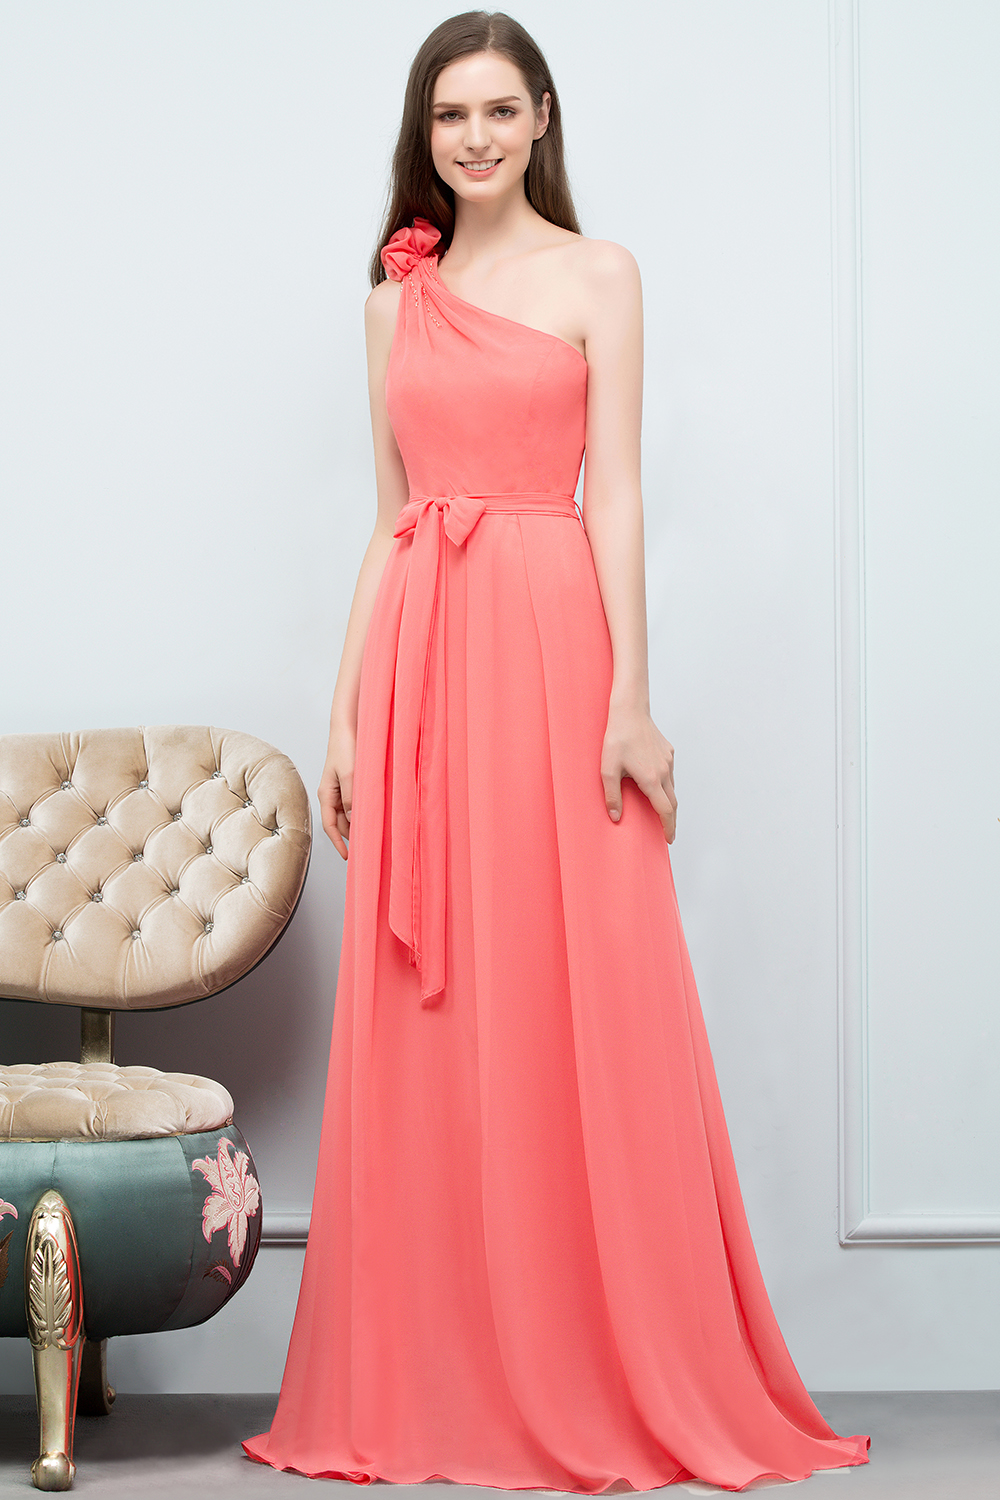 BMbridal Chic One Shoulder Flower Long Bridesmaid Dresses with Bow Sash